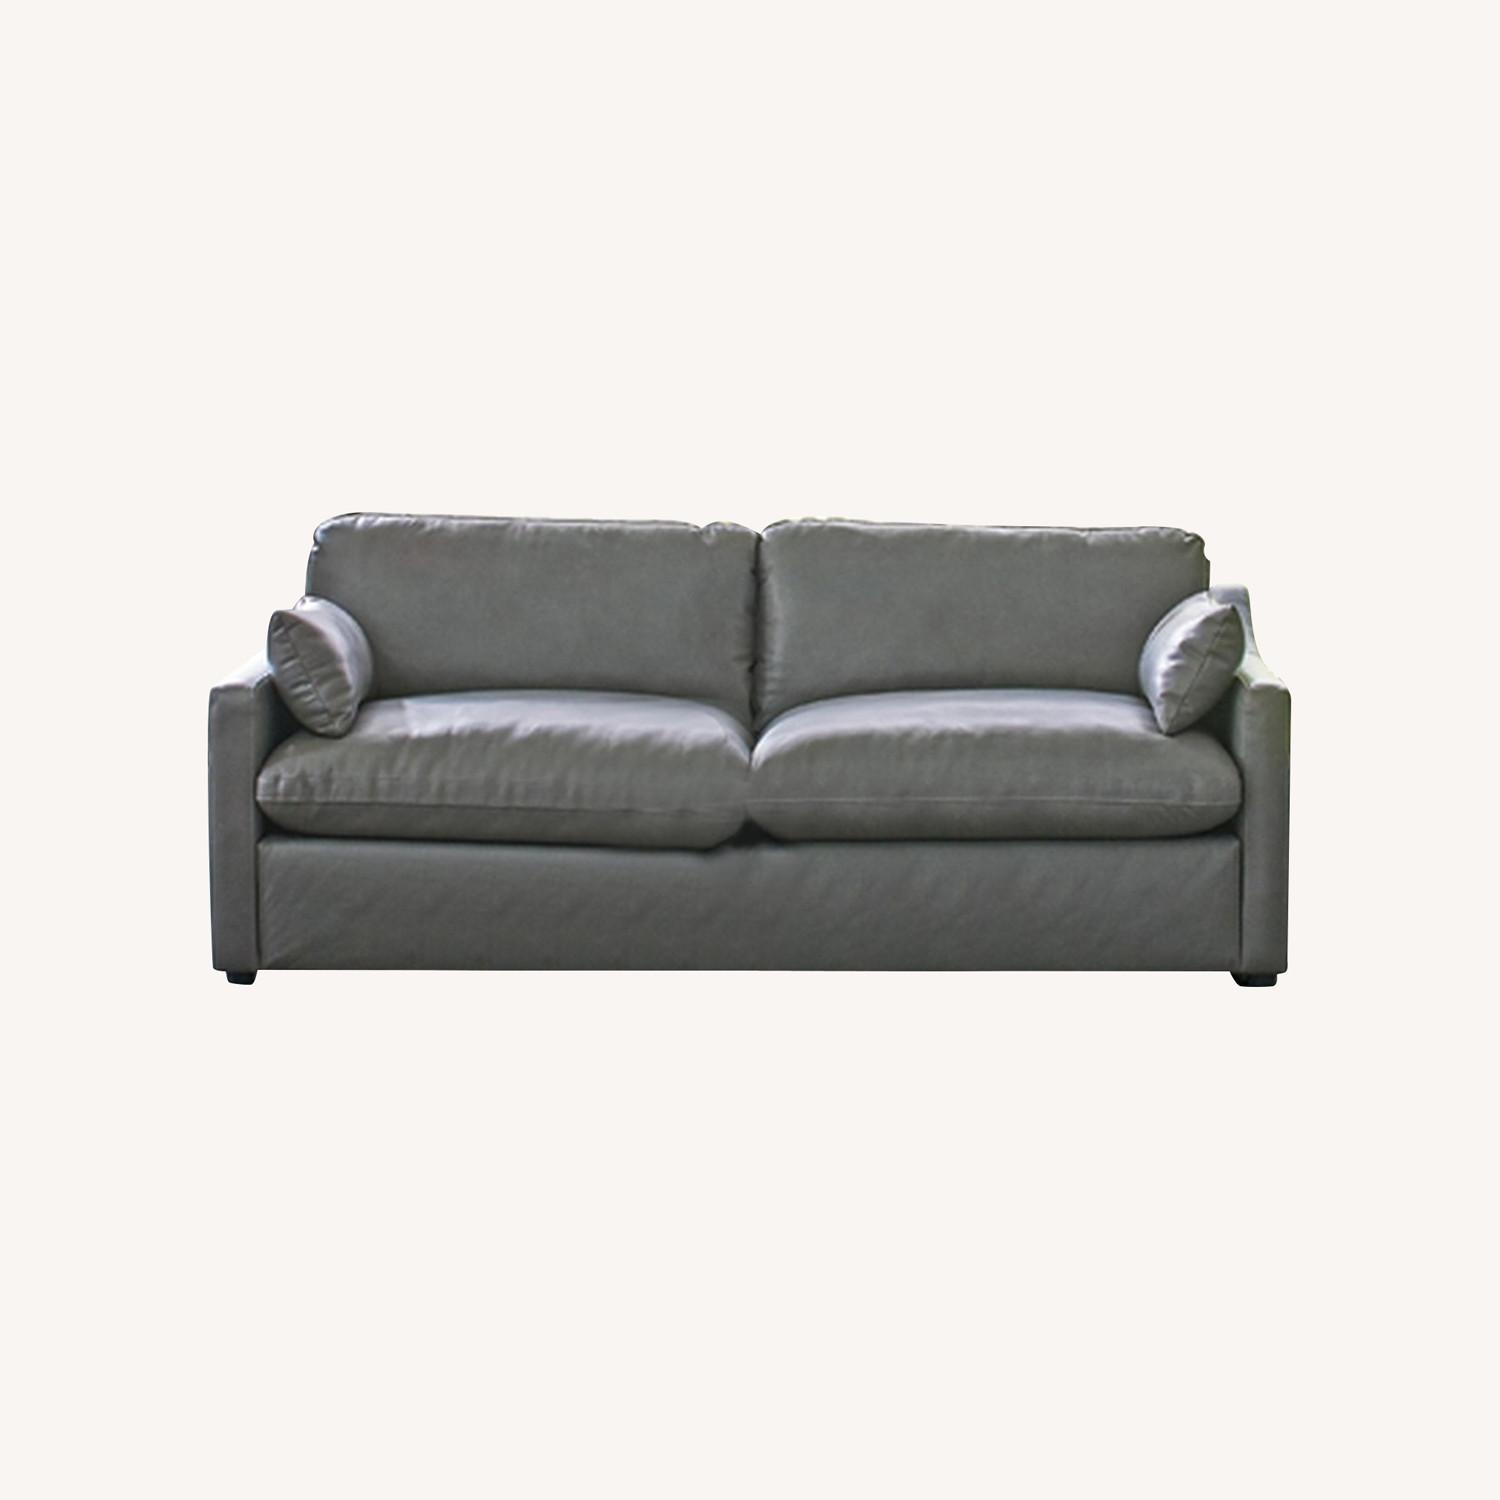 Loveseat In Grey Leatherette Upholstery - image-3